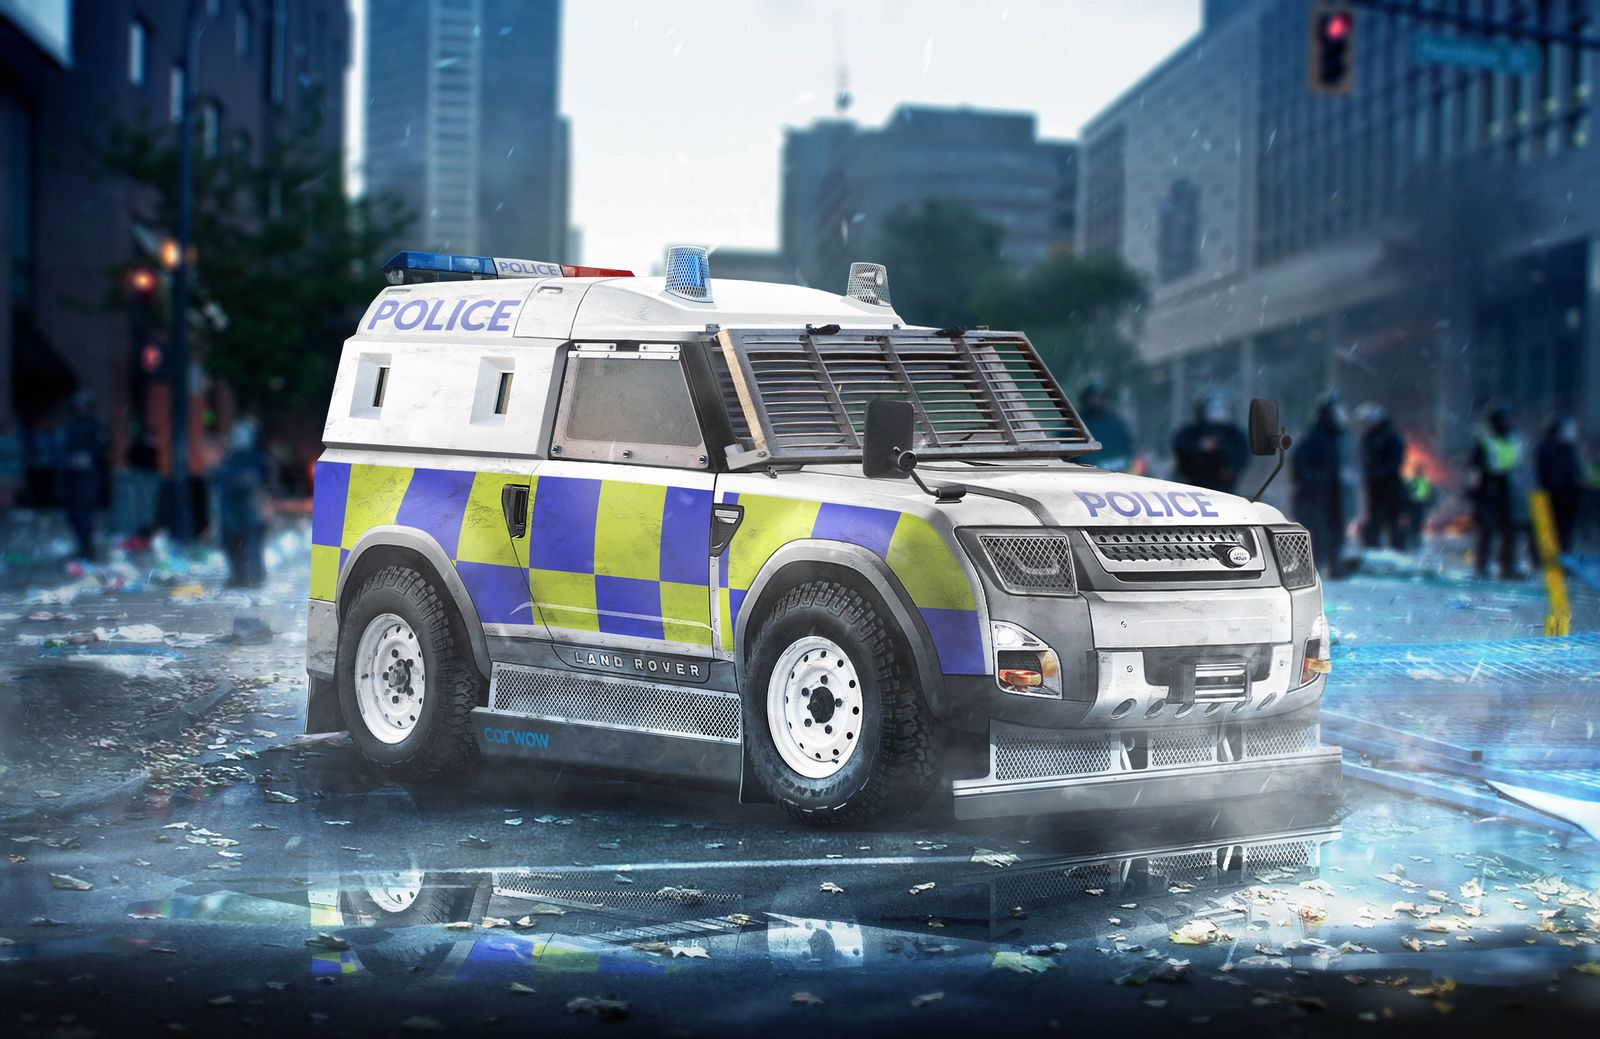 Next Gen Land Rover Defender >> Land Rover Defender Concept - Police model - Car Body Design